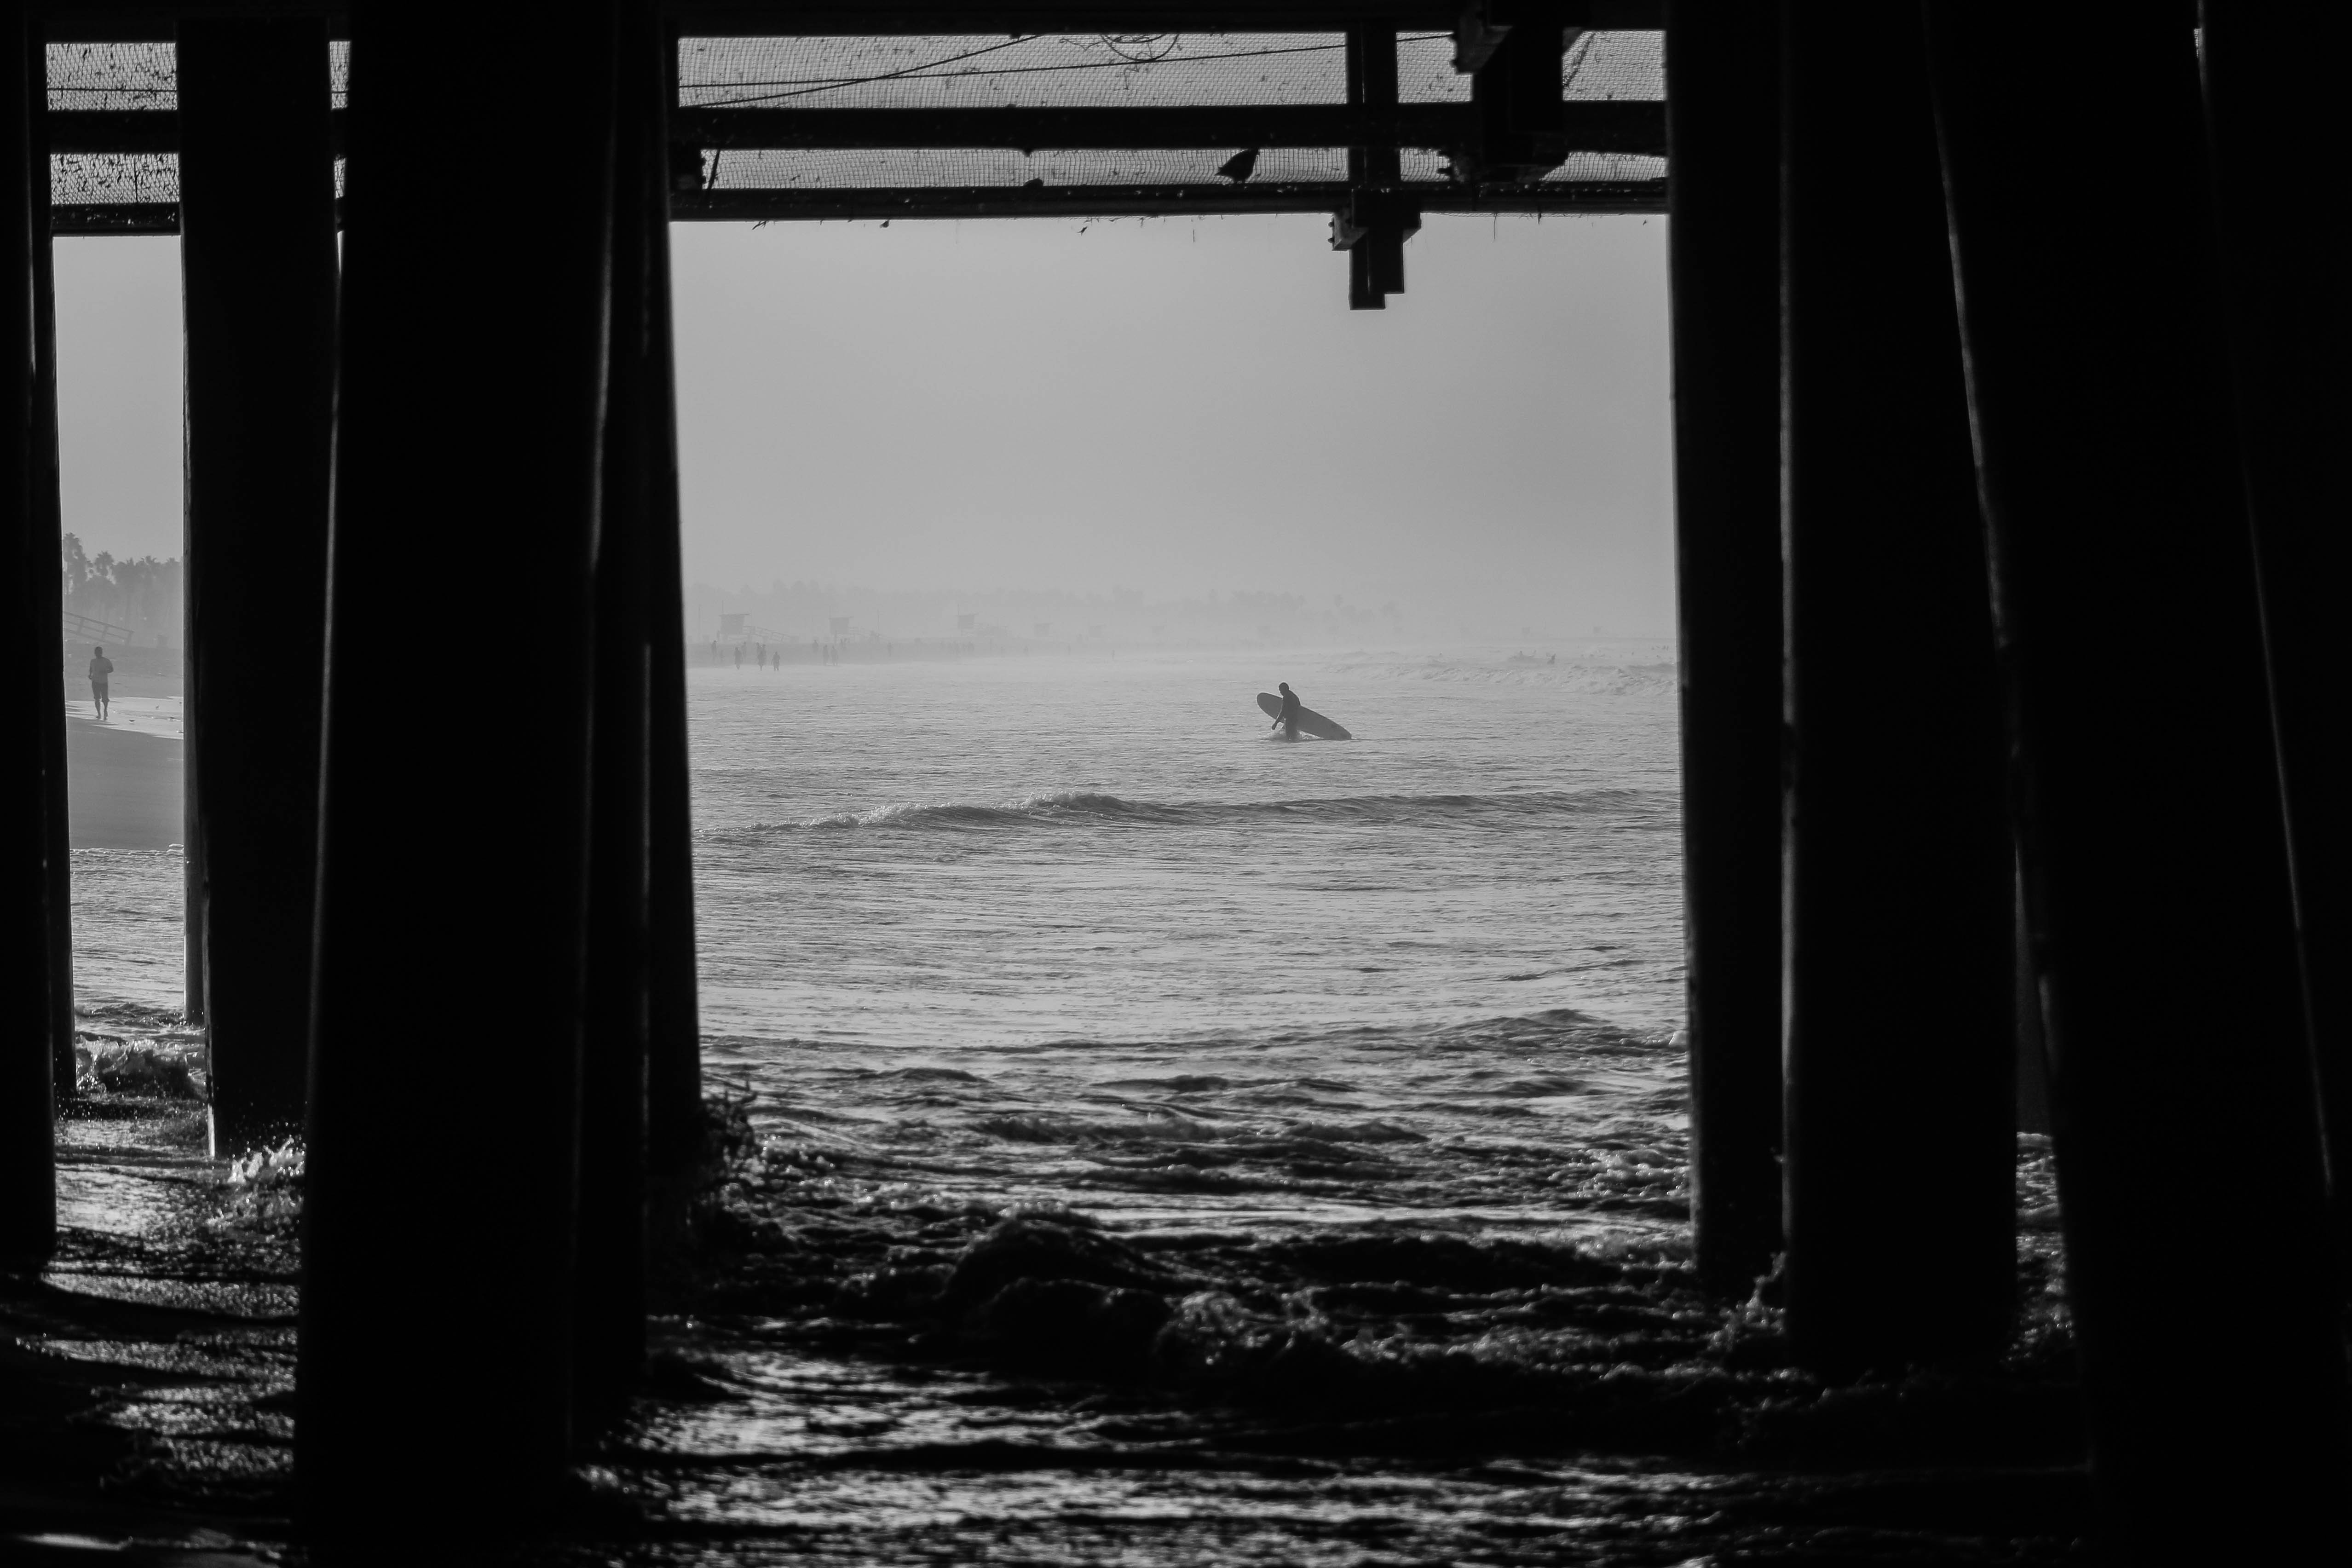 Surfer with a surfboard viewed through pier pillars at Santa Monica State Beach in black and white